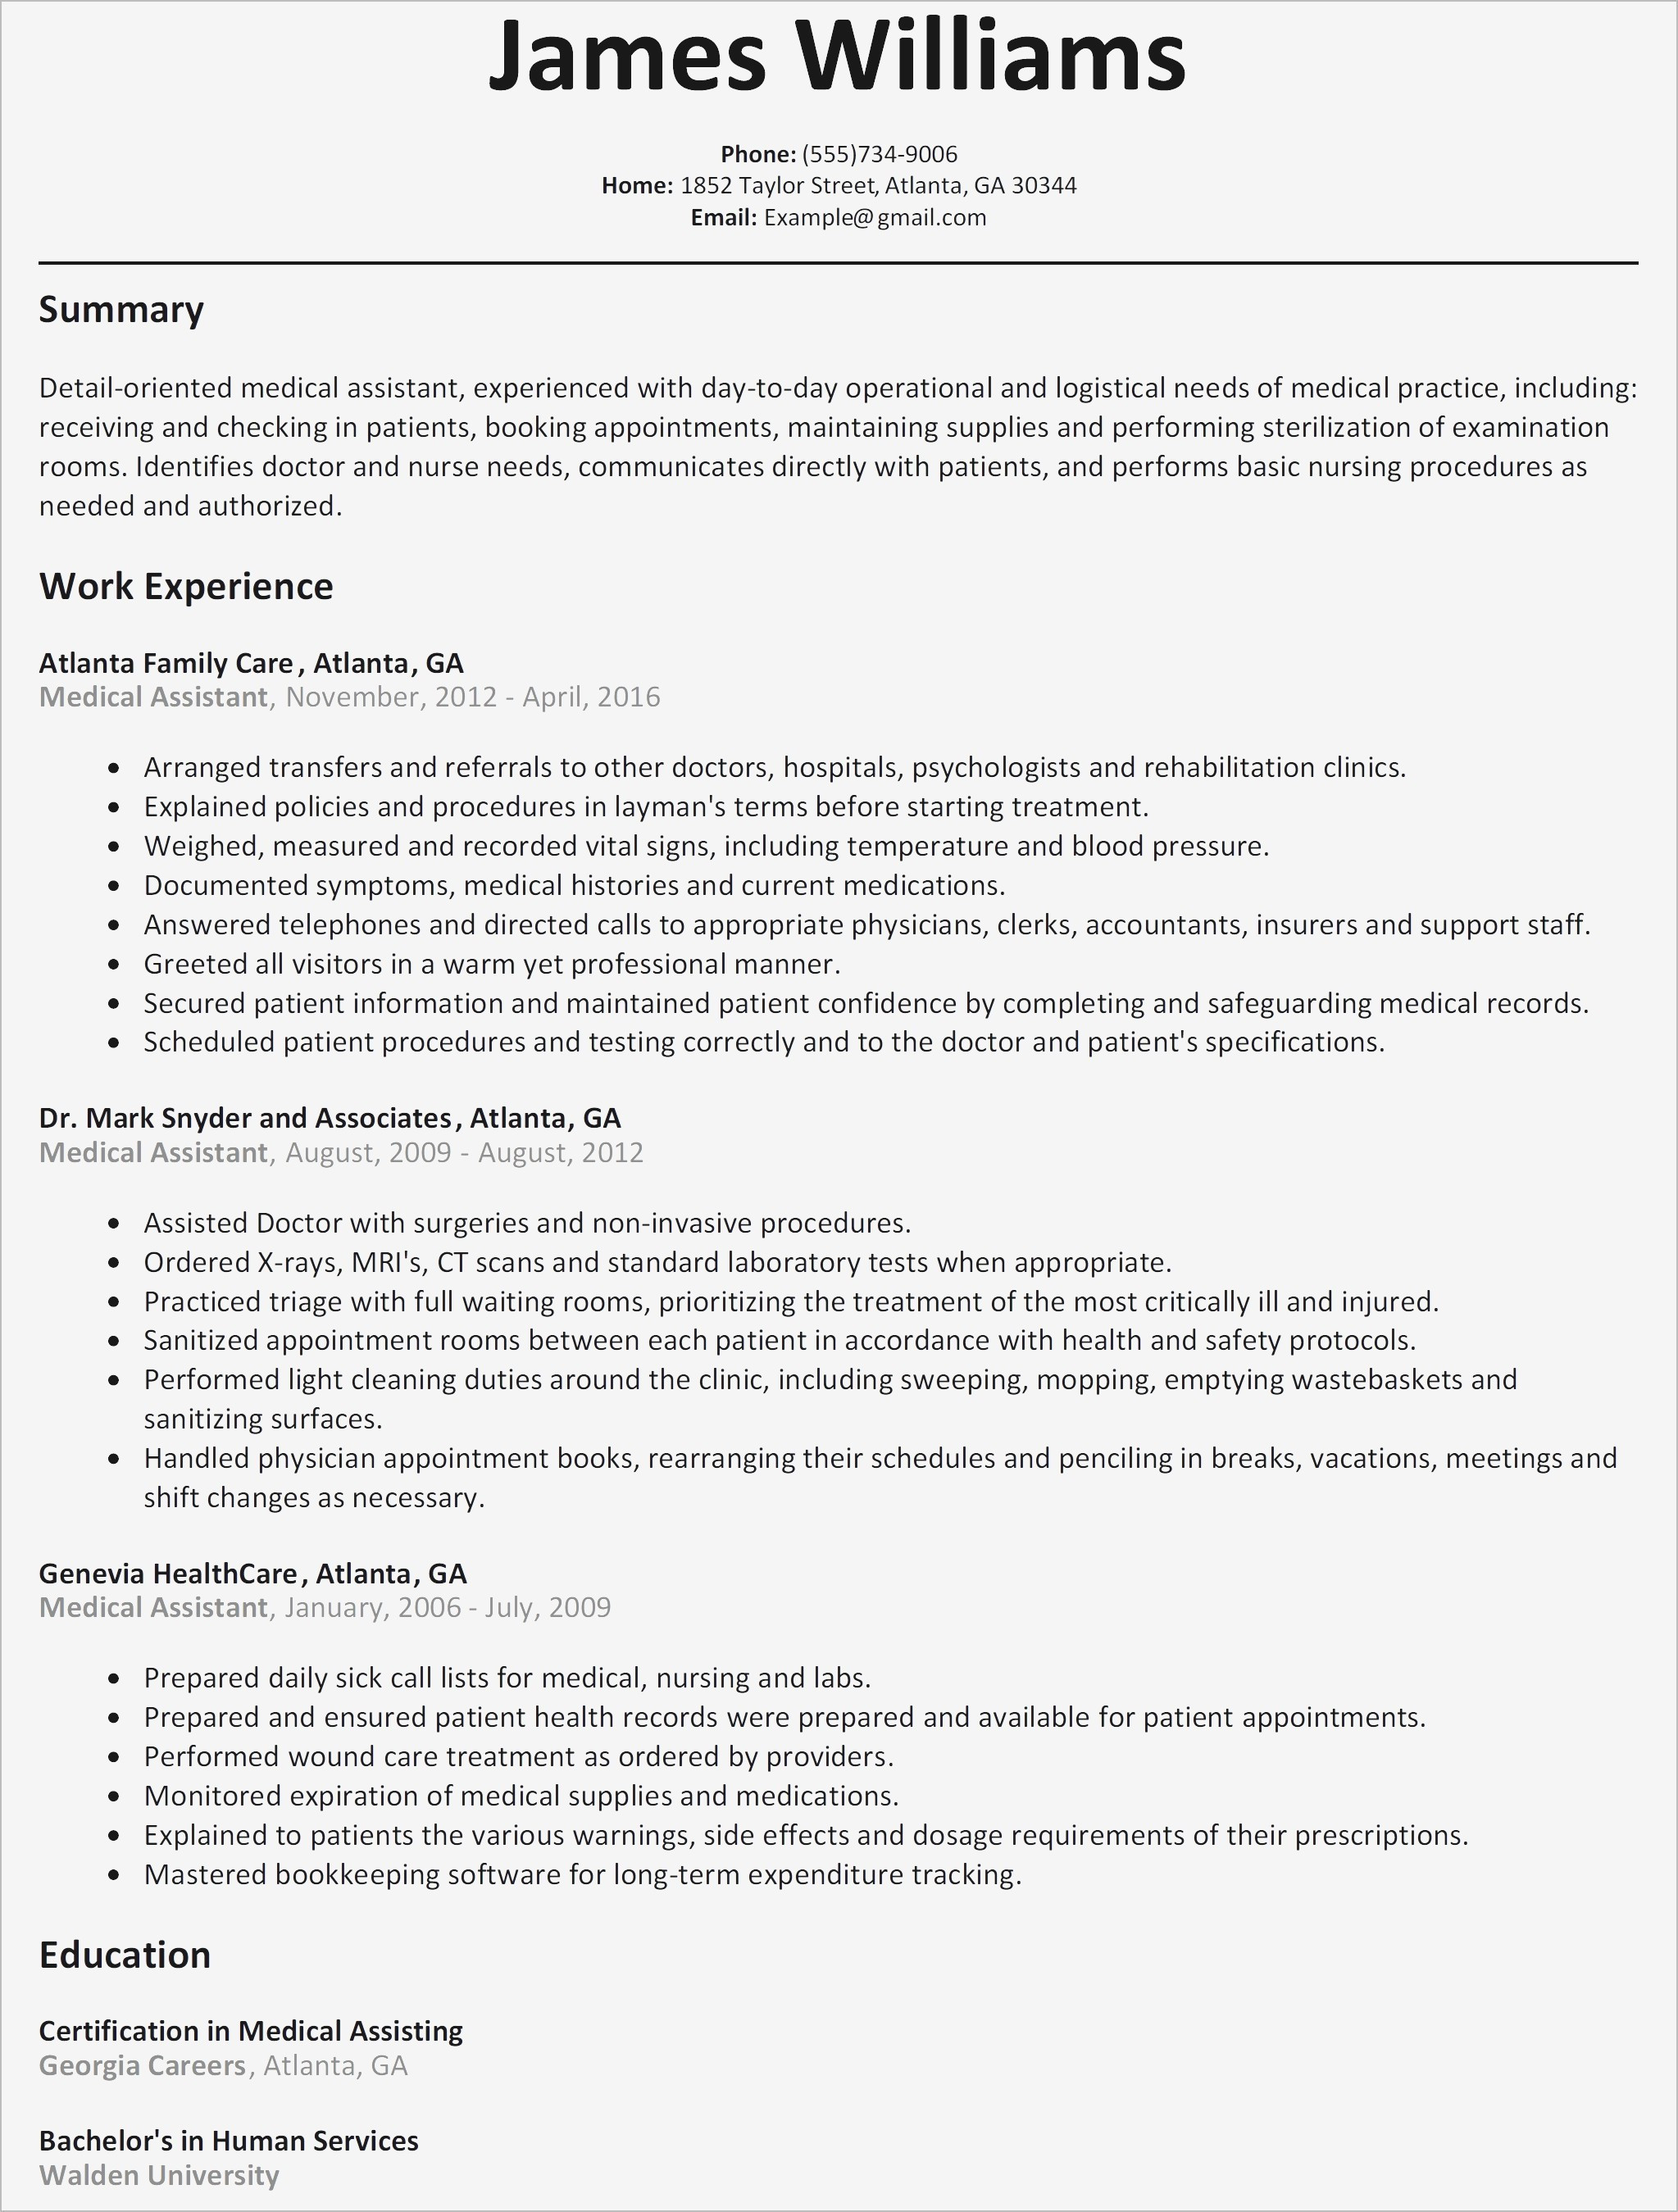 automotive careers resume example-Used Car Career Resume Luxury New Rn Resume Fresh Lovely New Nurse Resume Awesome Nurse Resume 20-f